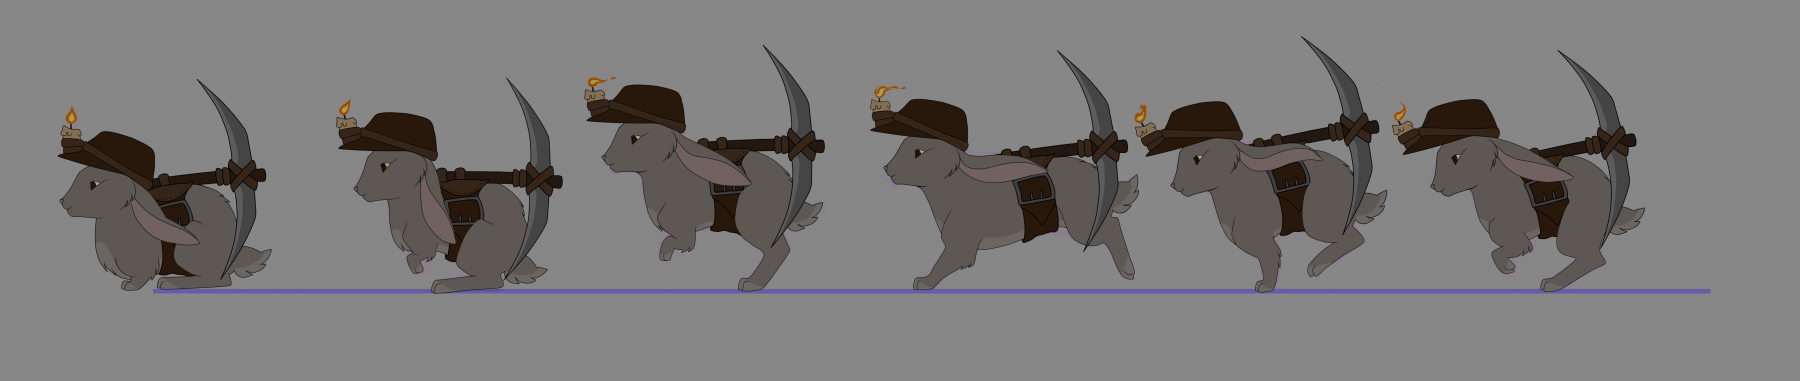 Rabbit miner hopping keyframes